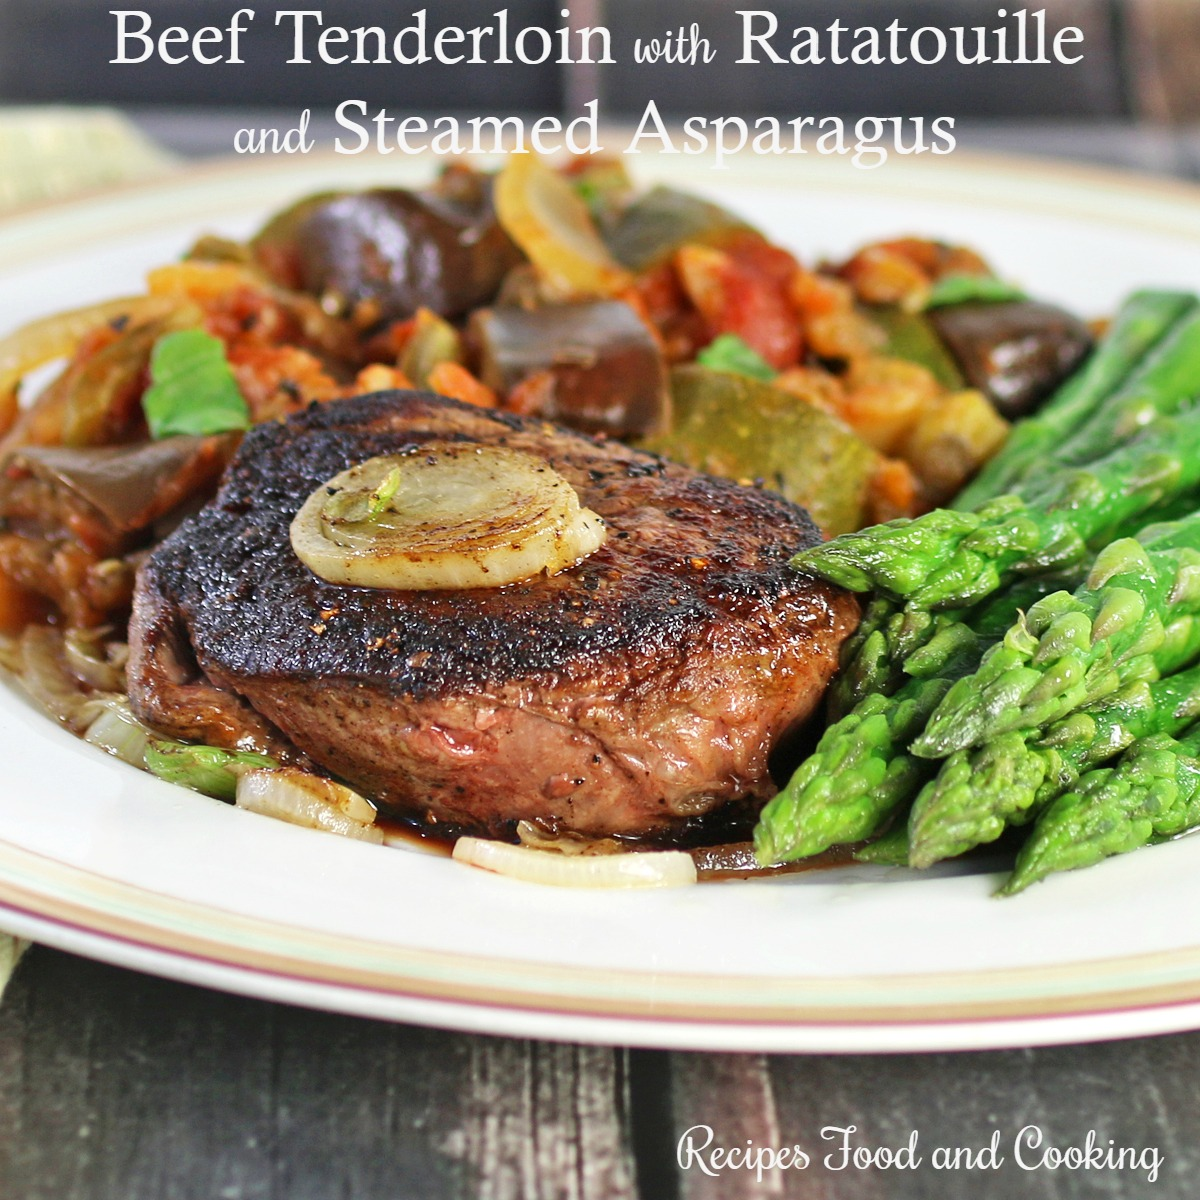 Beef Tenderloin with Ratatouille and Steamed Asparagus